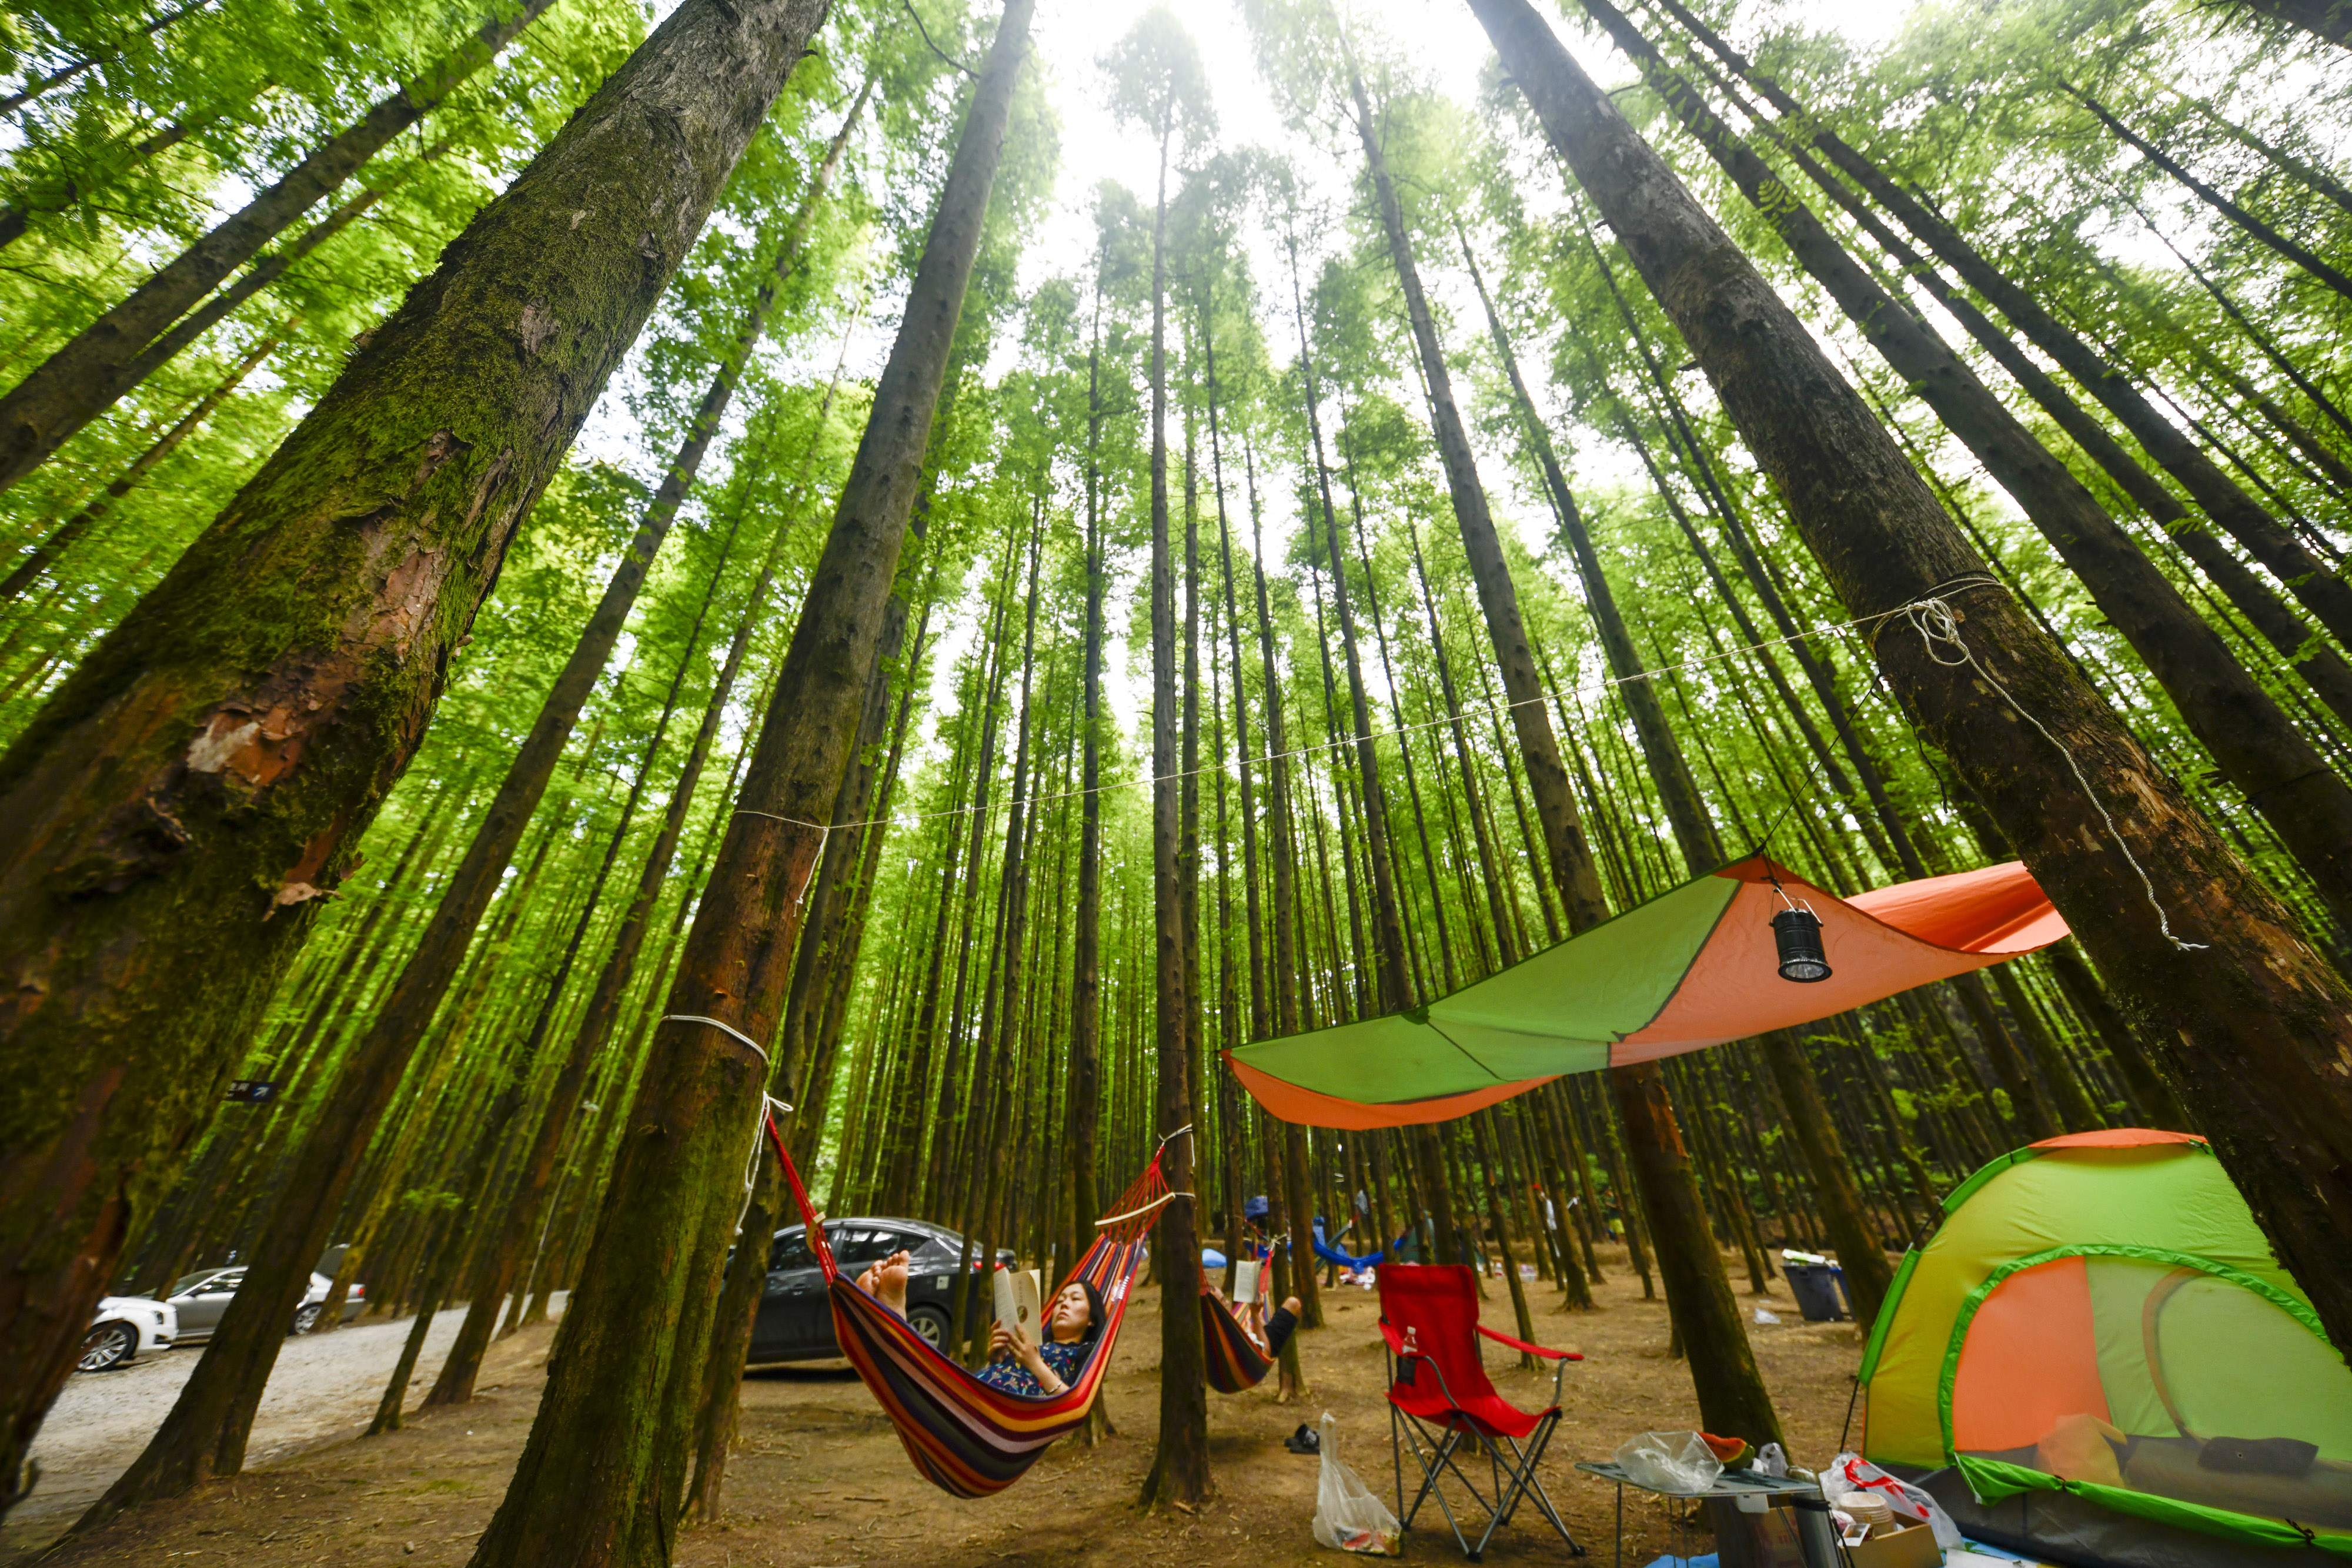 Charm of Chinese forests keeps attracting visitors  - Xinhua | English.news.cn